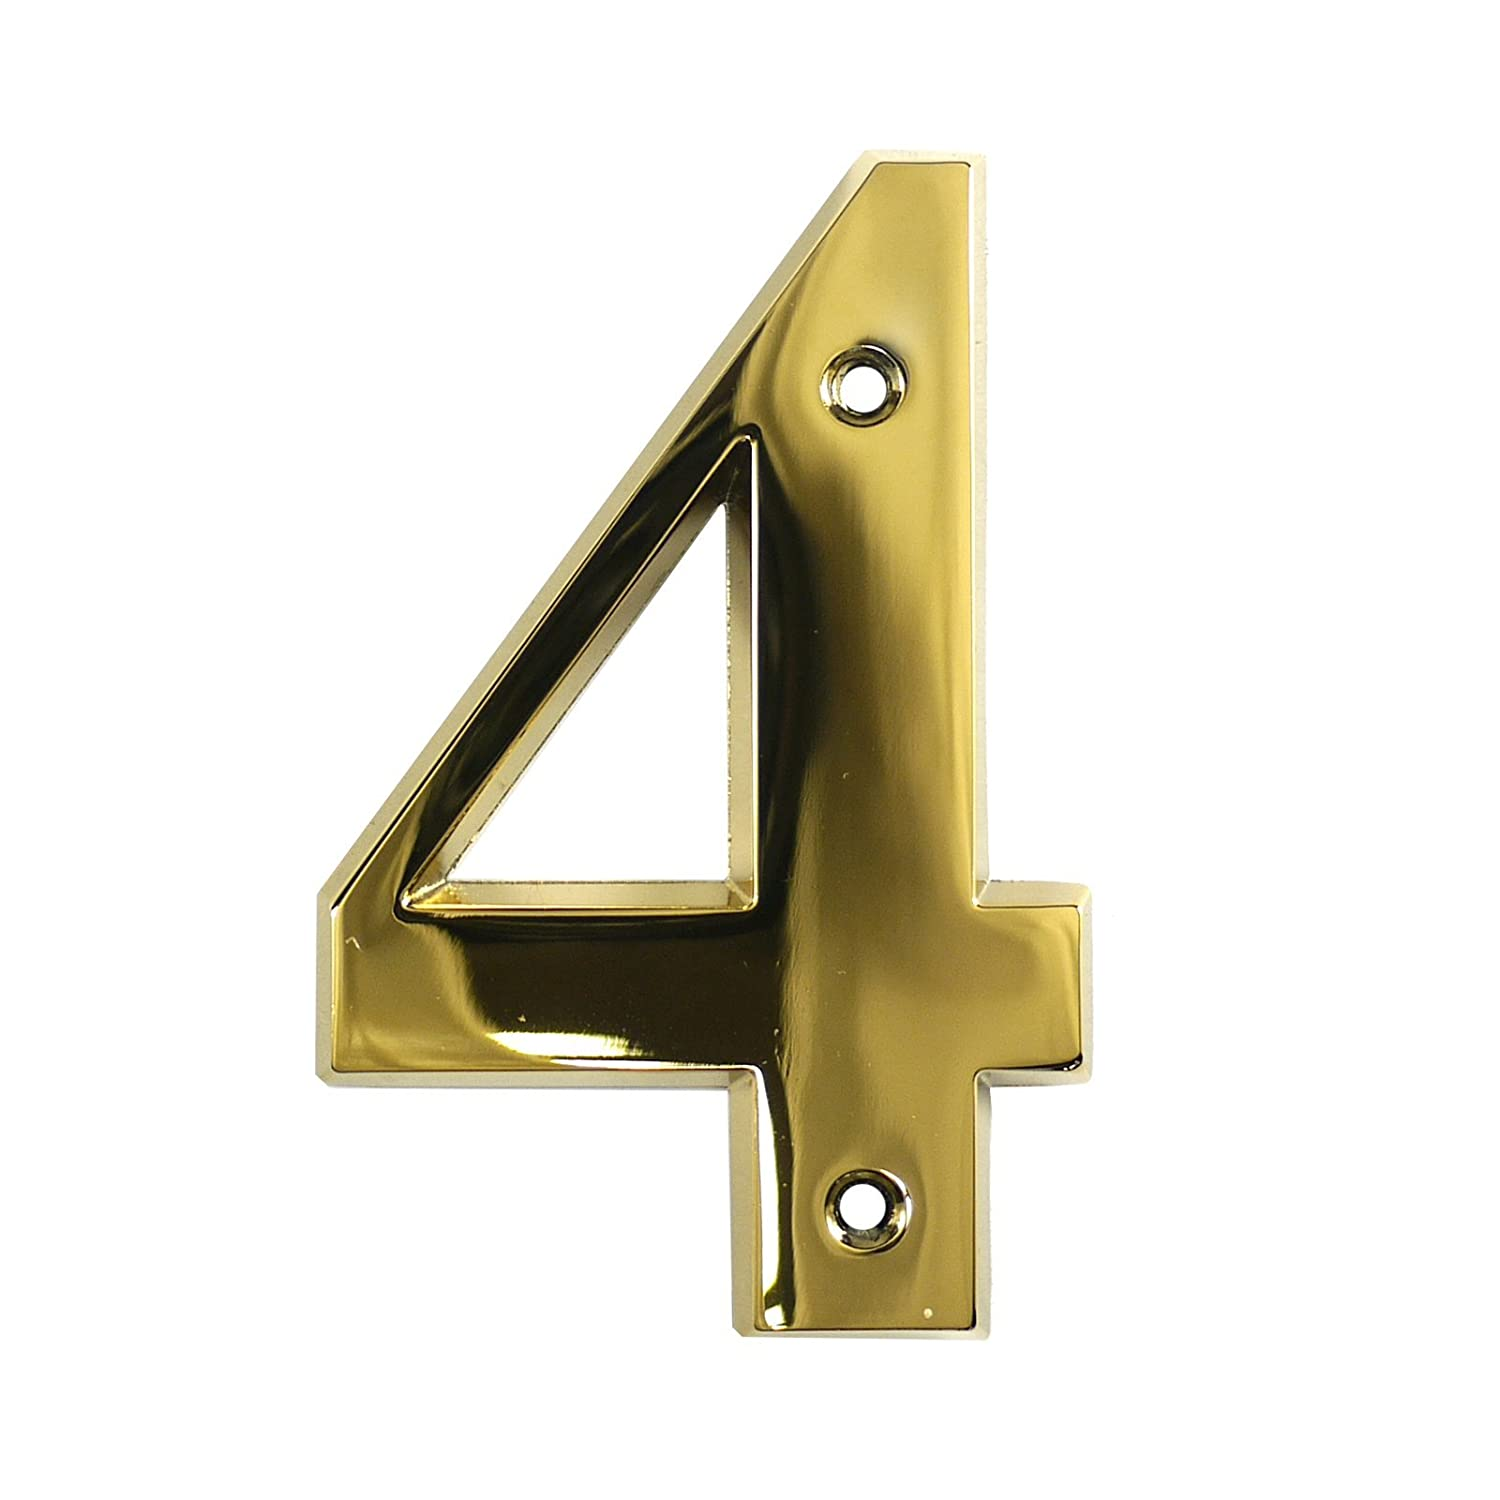 Number 6 No Screws Needed Polished Brass 3 Times Roman Self Adhesive Door Numeral